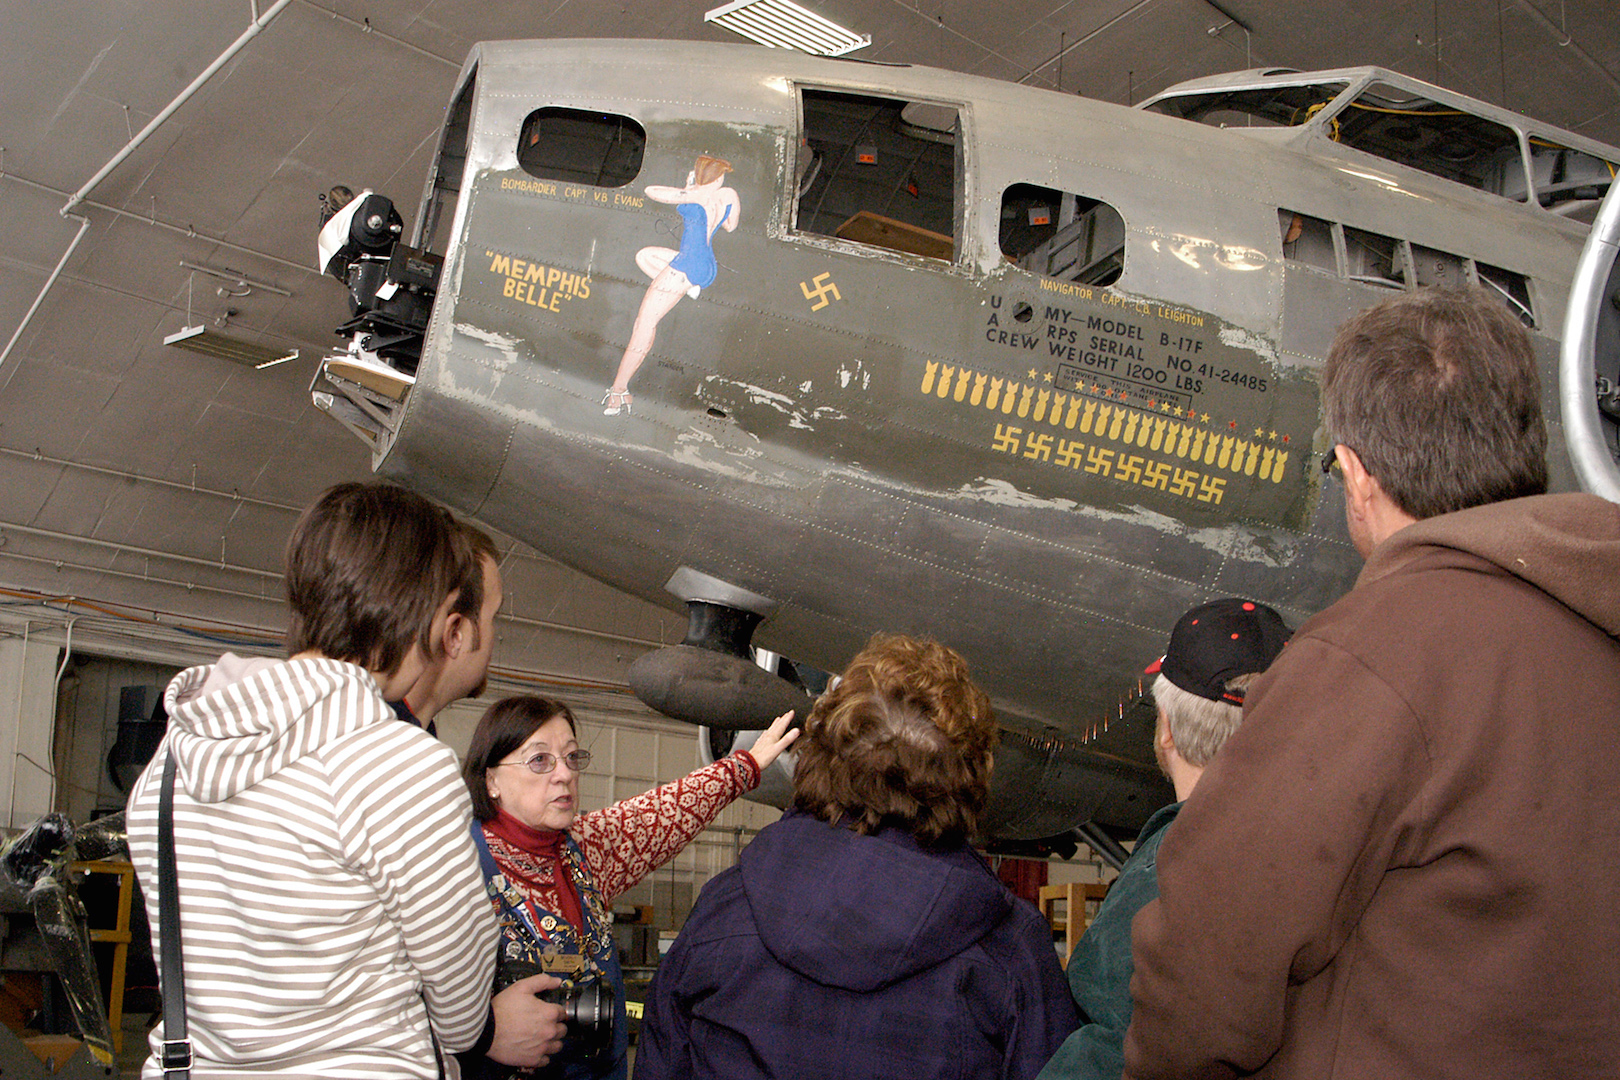 Museum volunteer Beverly Smith walks visitors through the Behind the Scenes Tour of the restoration area. The Memphis Belle is one of the restoration projects that visitors can view. (U.S. Air Force photo by Ken LaRock)